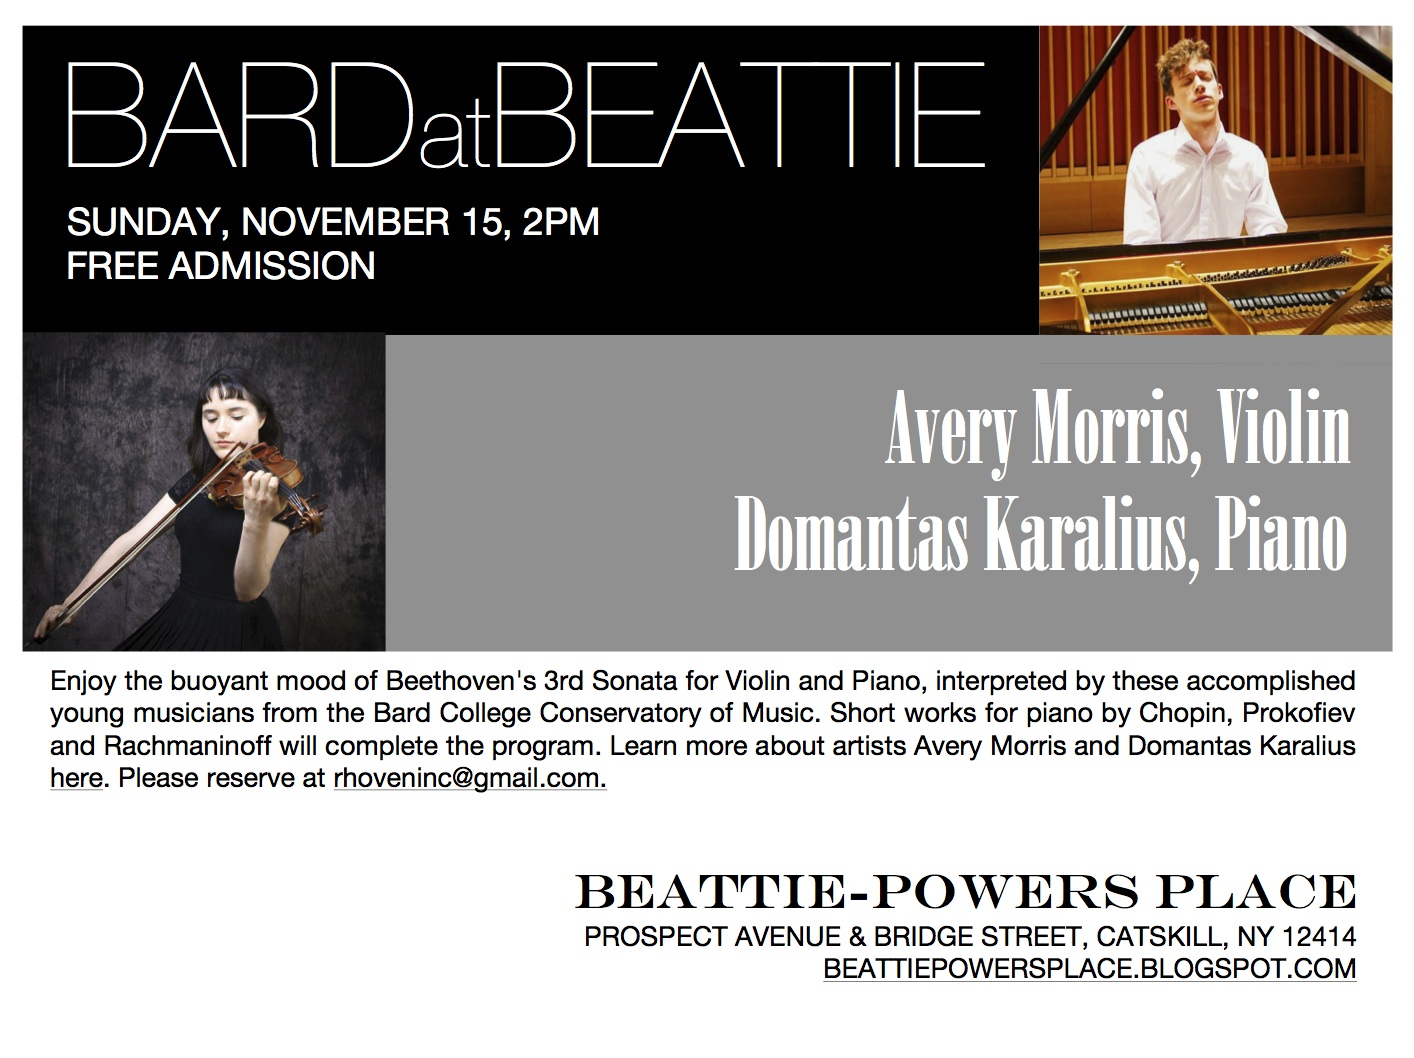 Beattie powers place beethoven chopin prokofiev for Yamaha music school los angeles